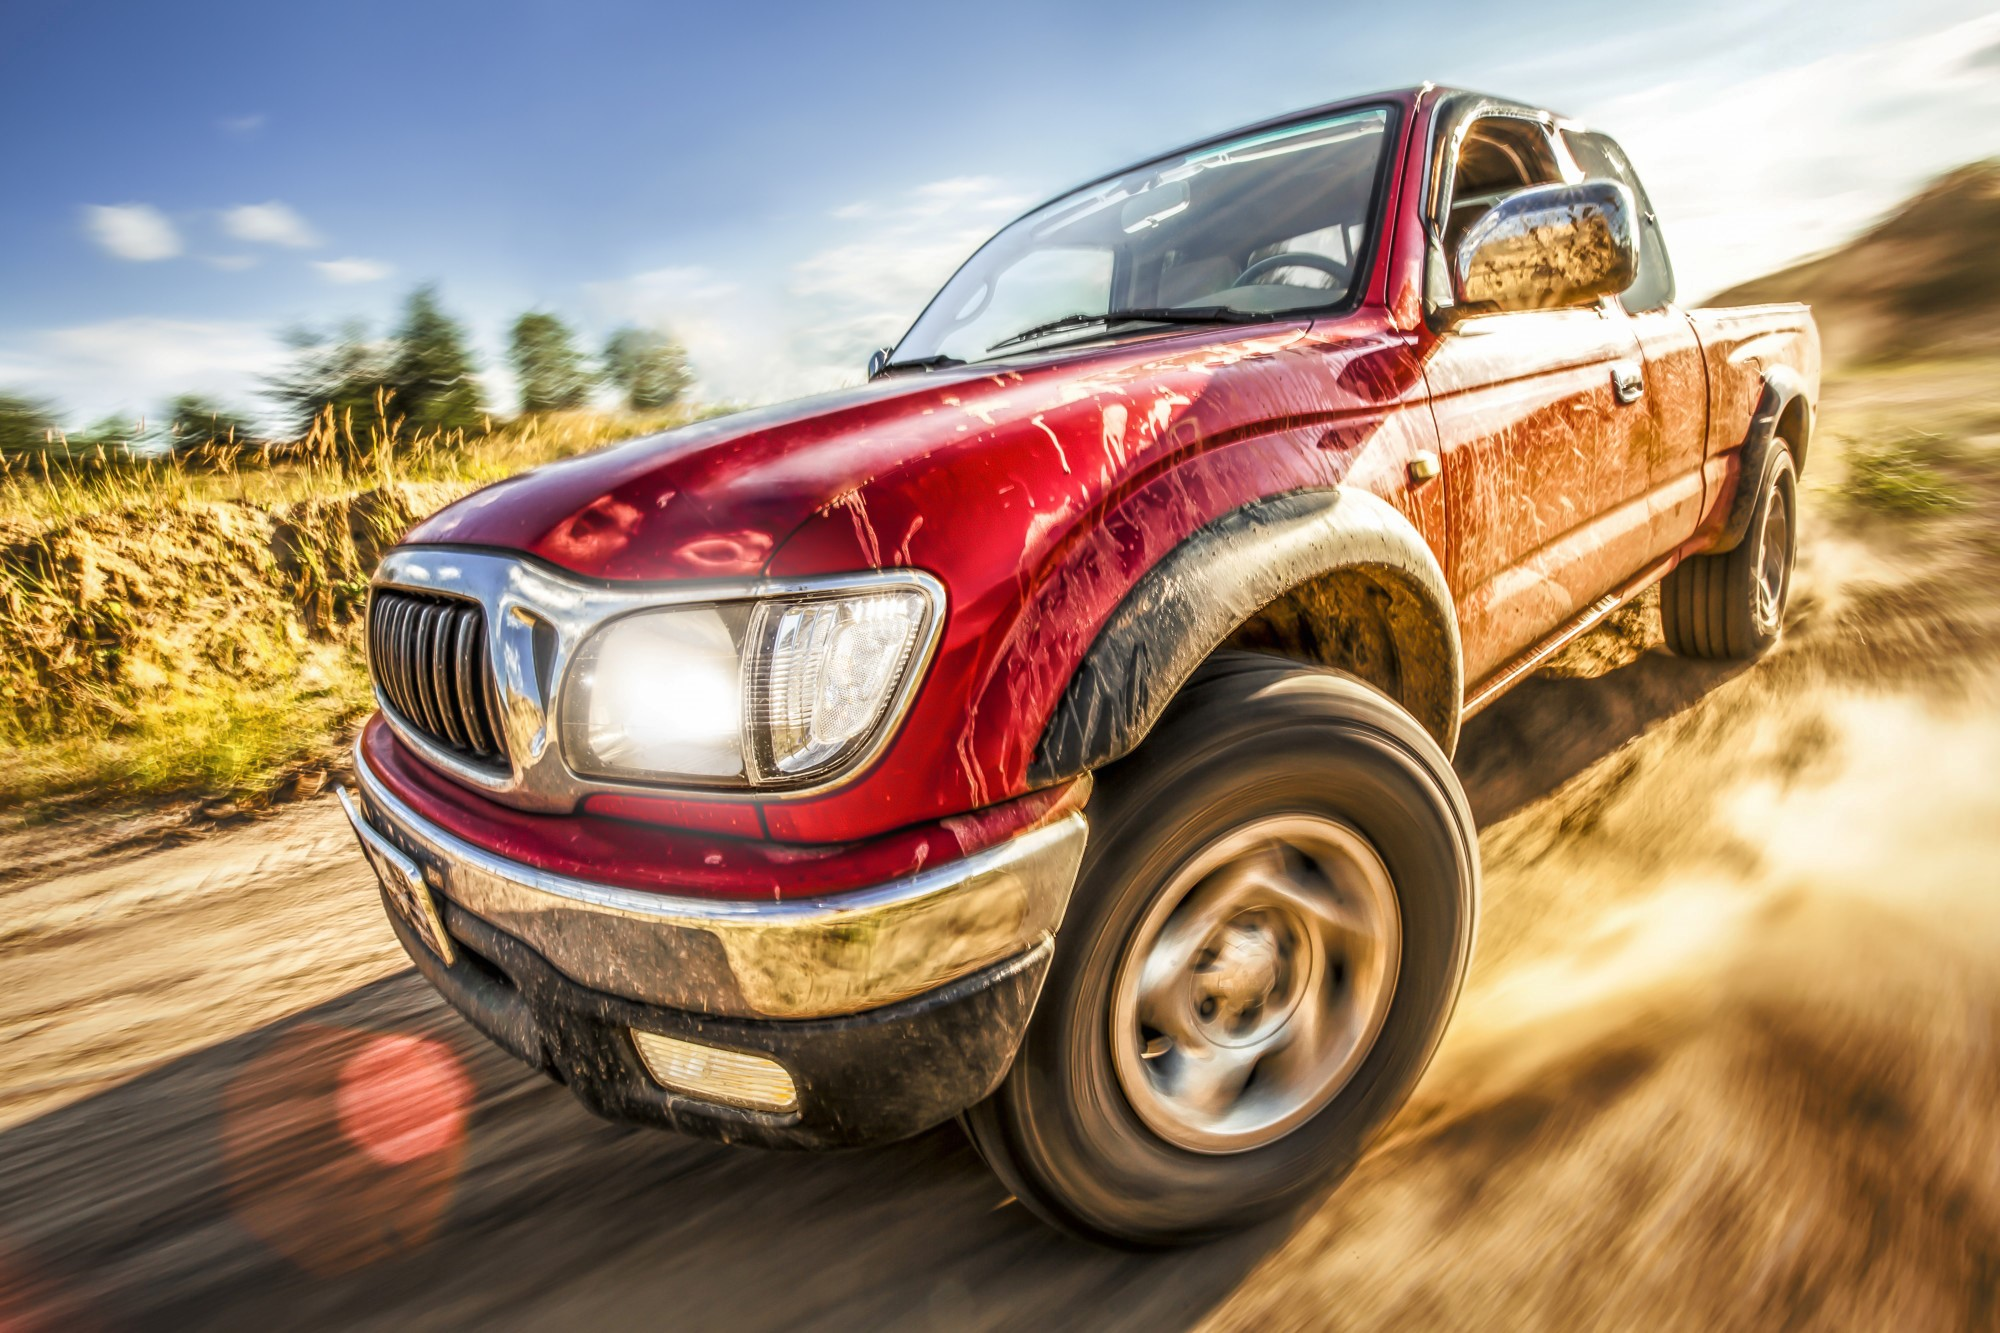 A List Of Some Super Cool Accessories For Pickup Trucks